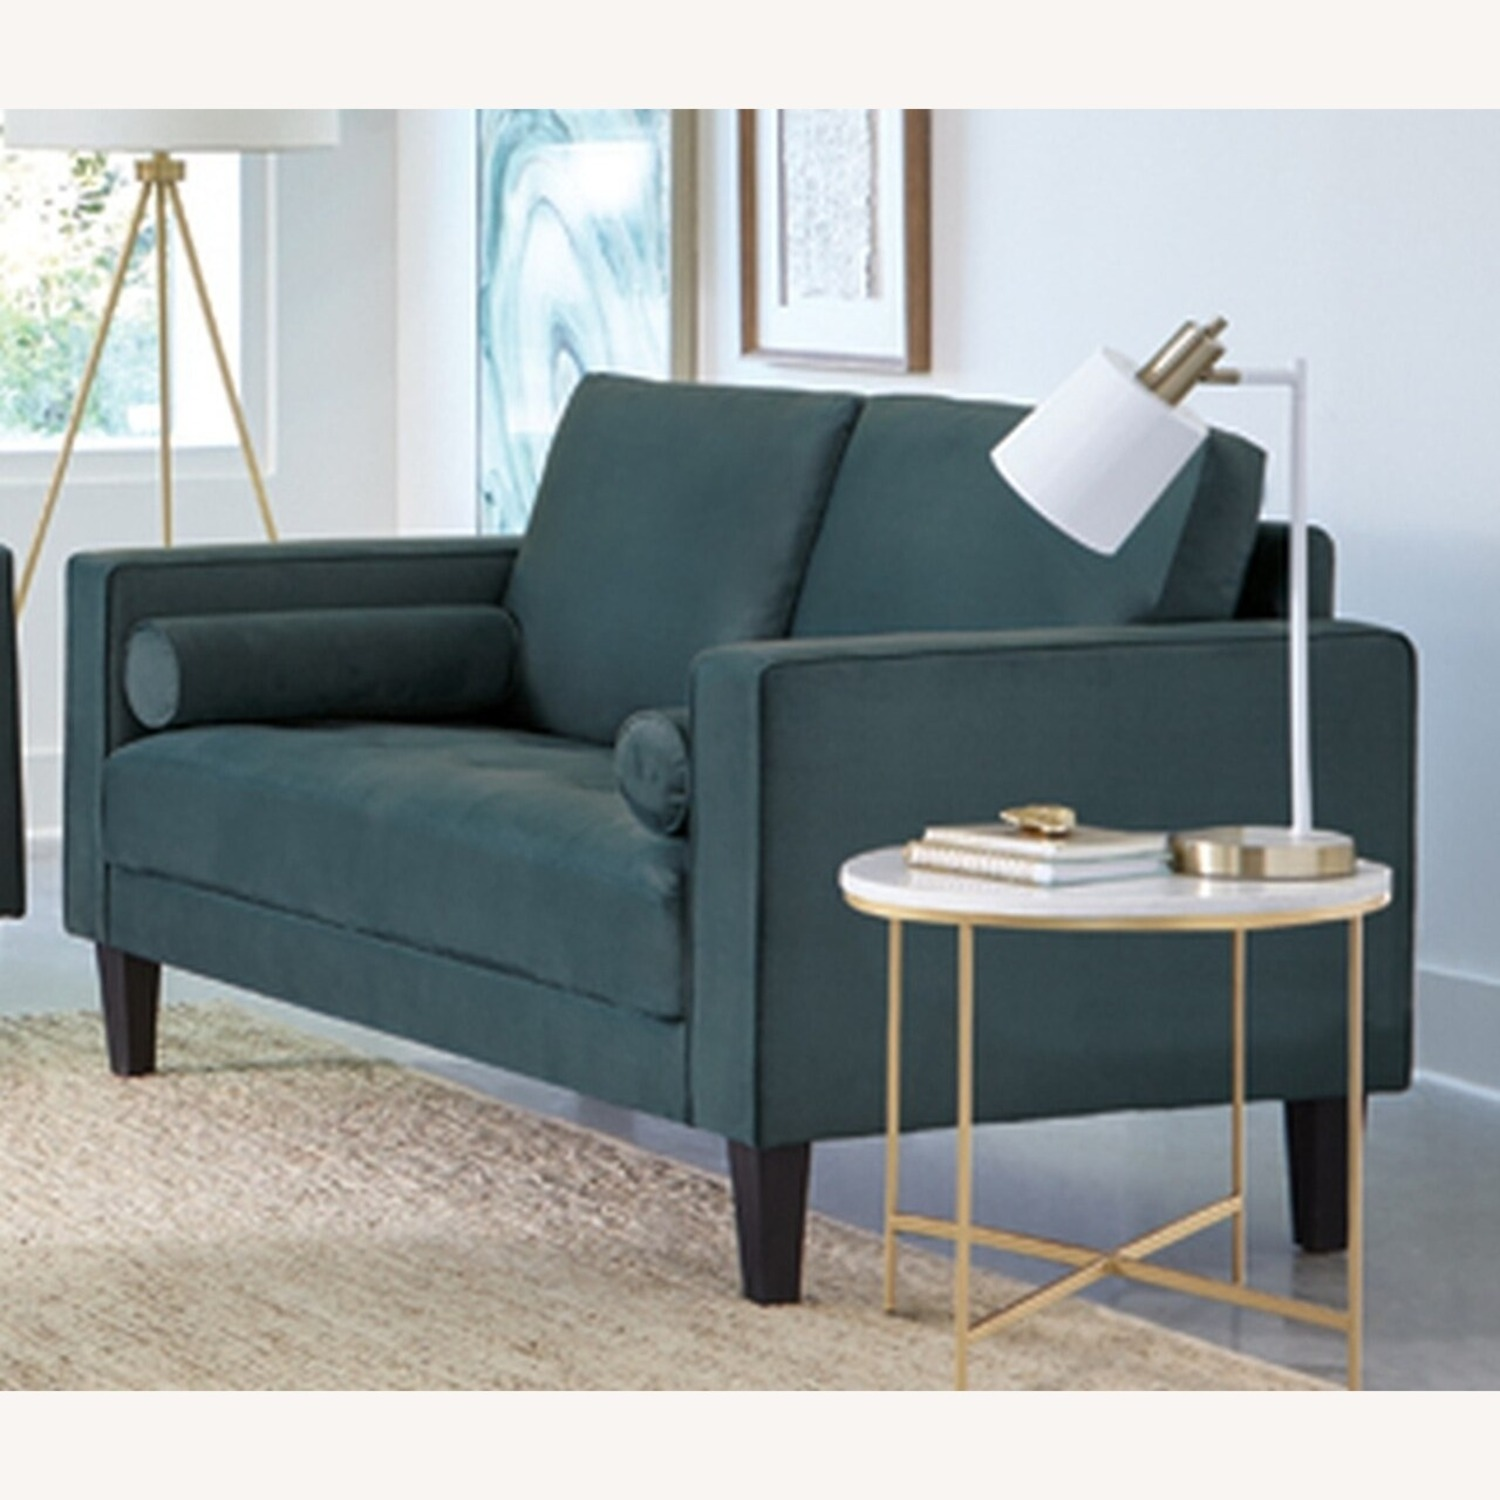 Loveseat In Dark Teal Finish W/ Tall Tapered Legs - image-1